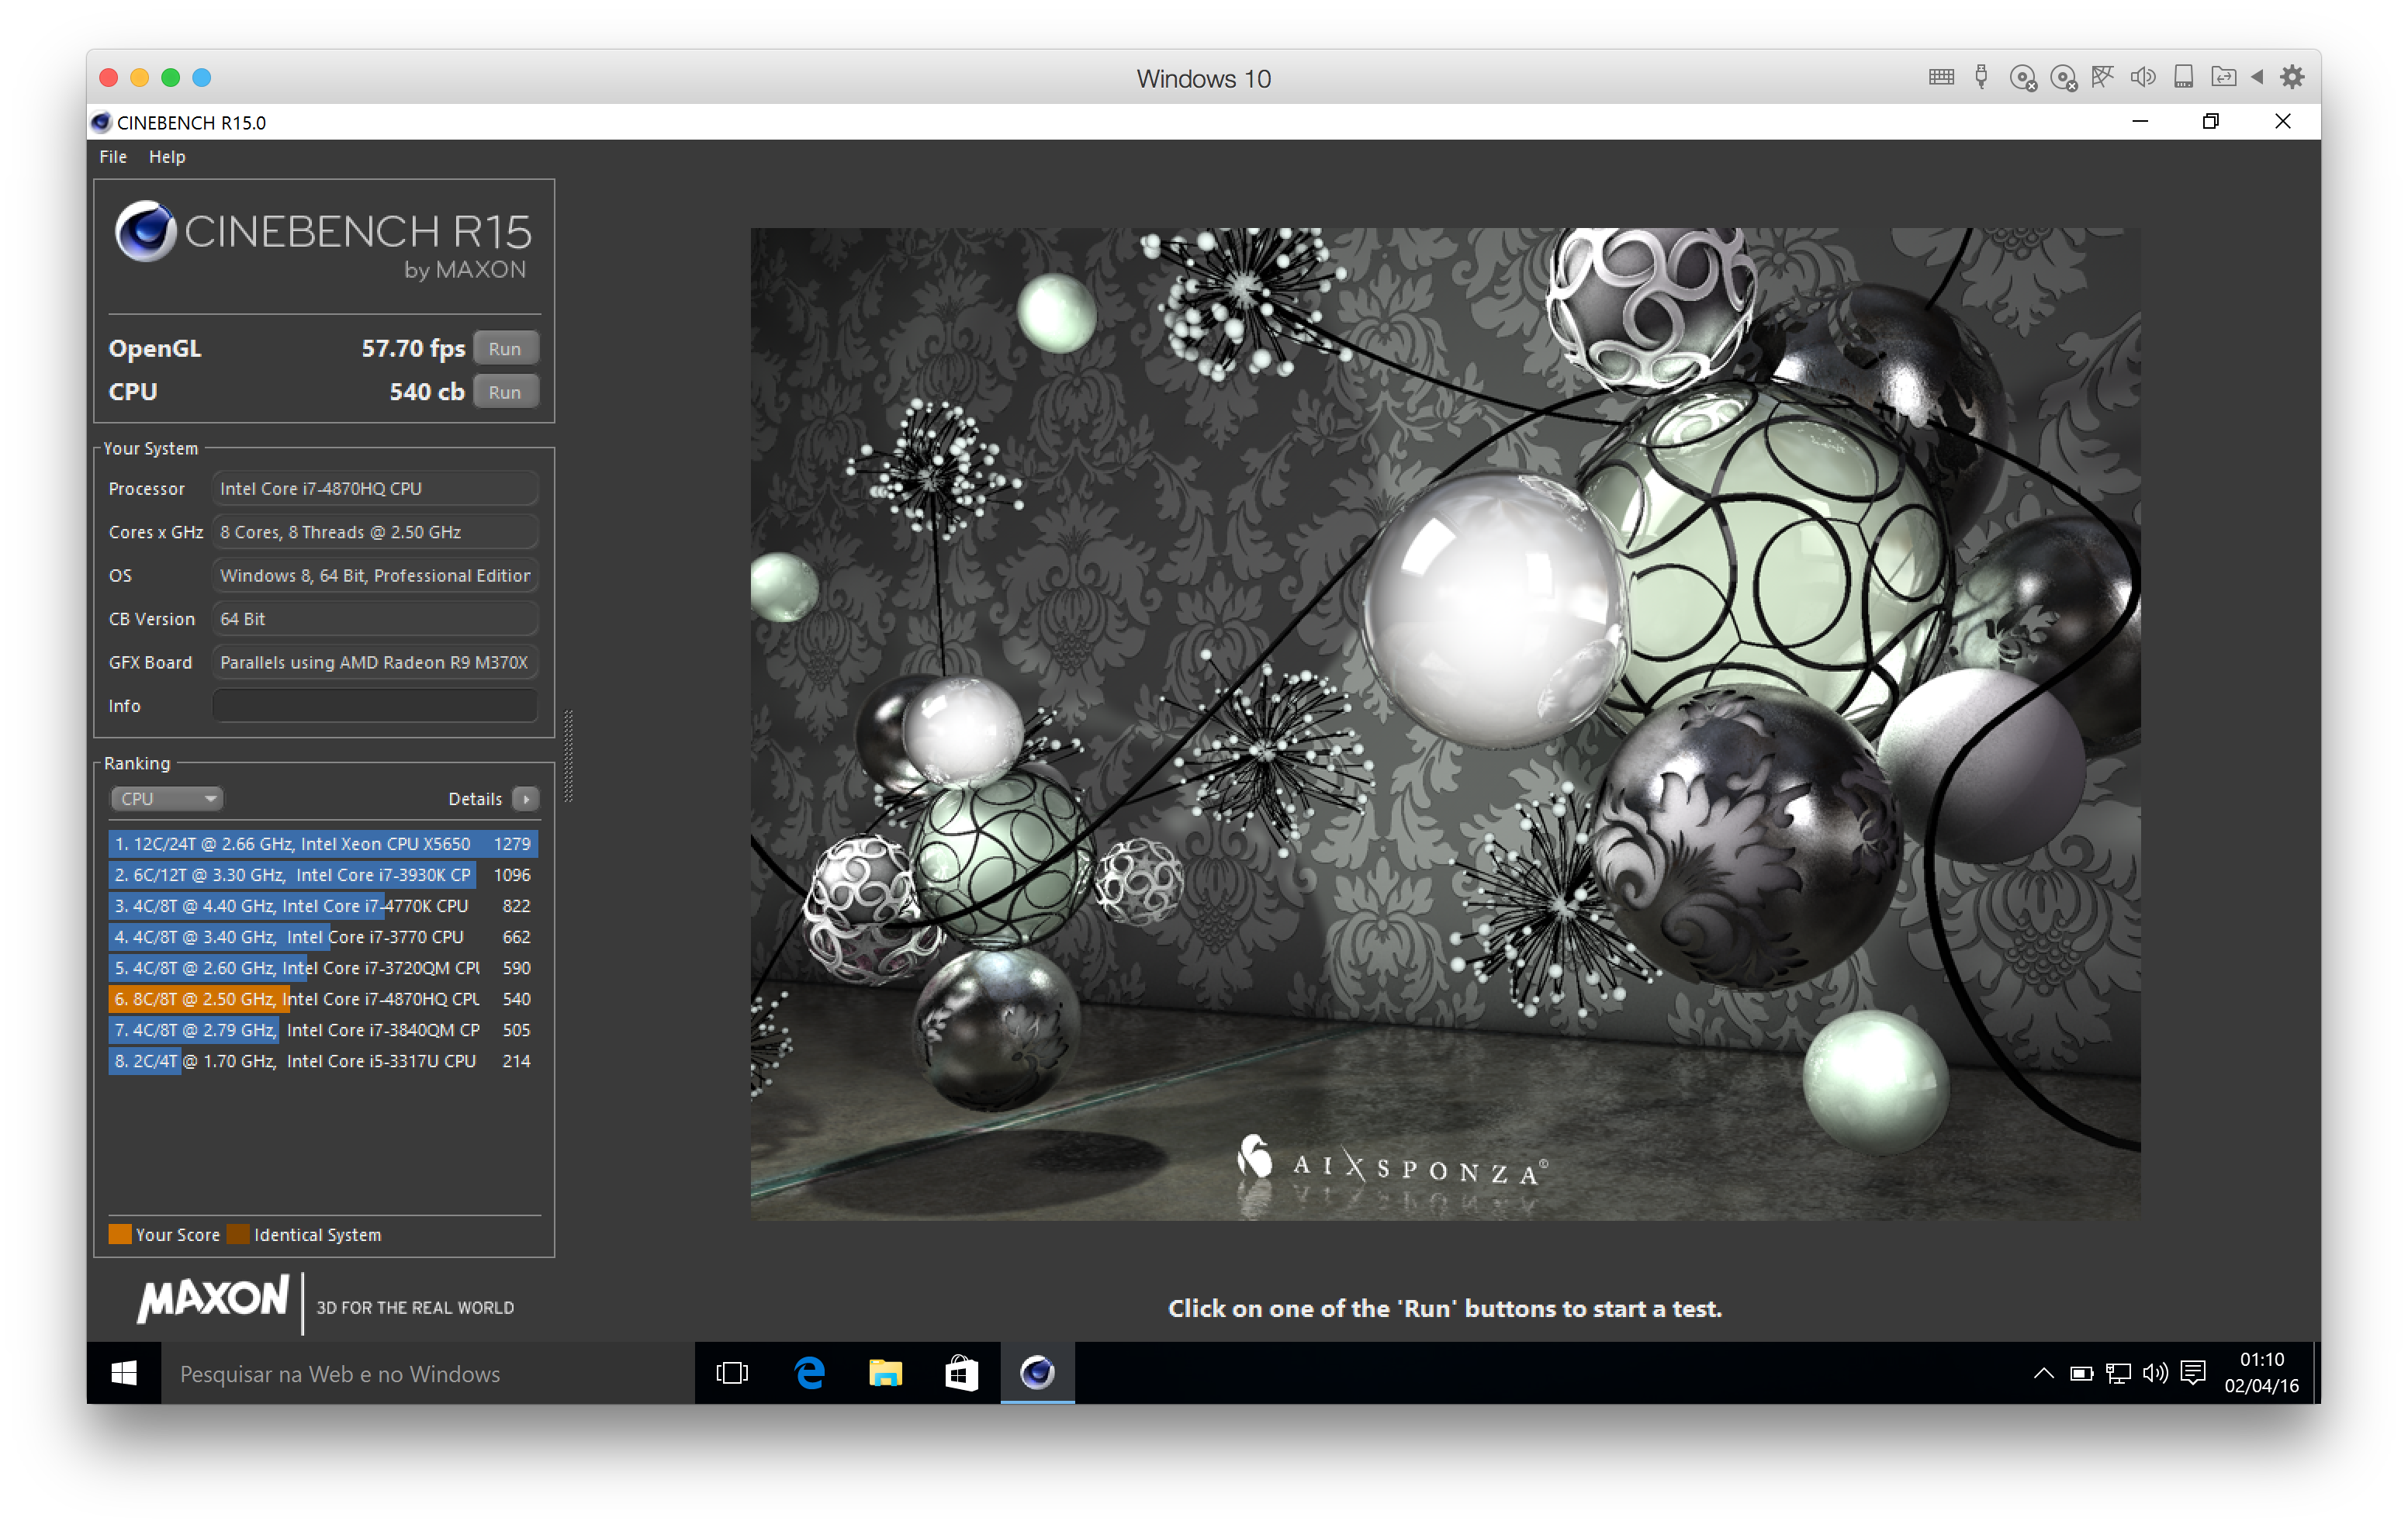 cinebench-win